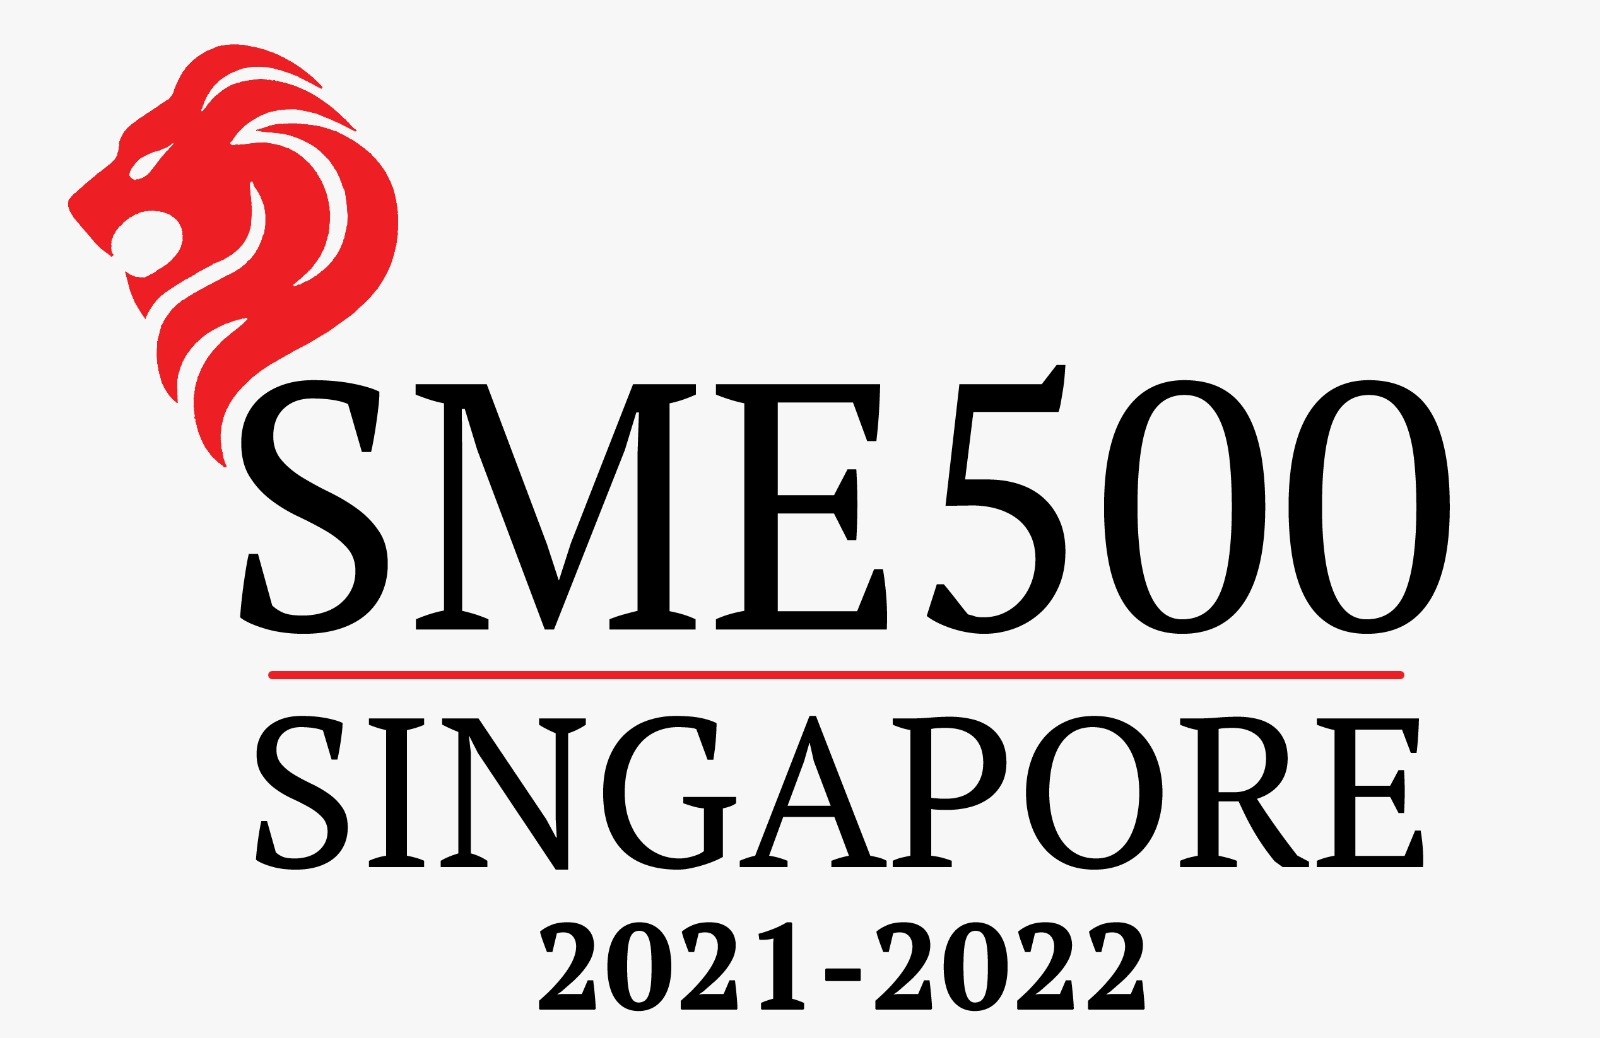 Recognized as Singapore's Top 500 SME For the Year 2021